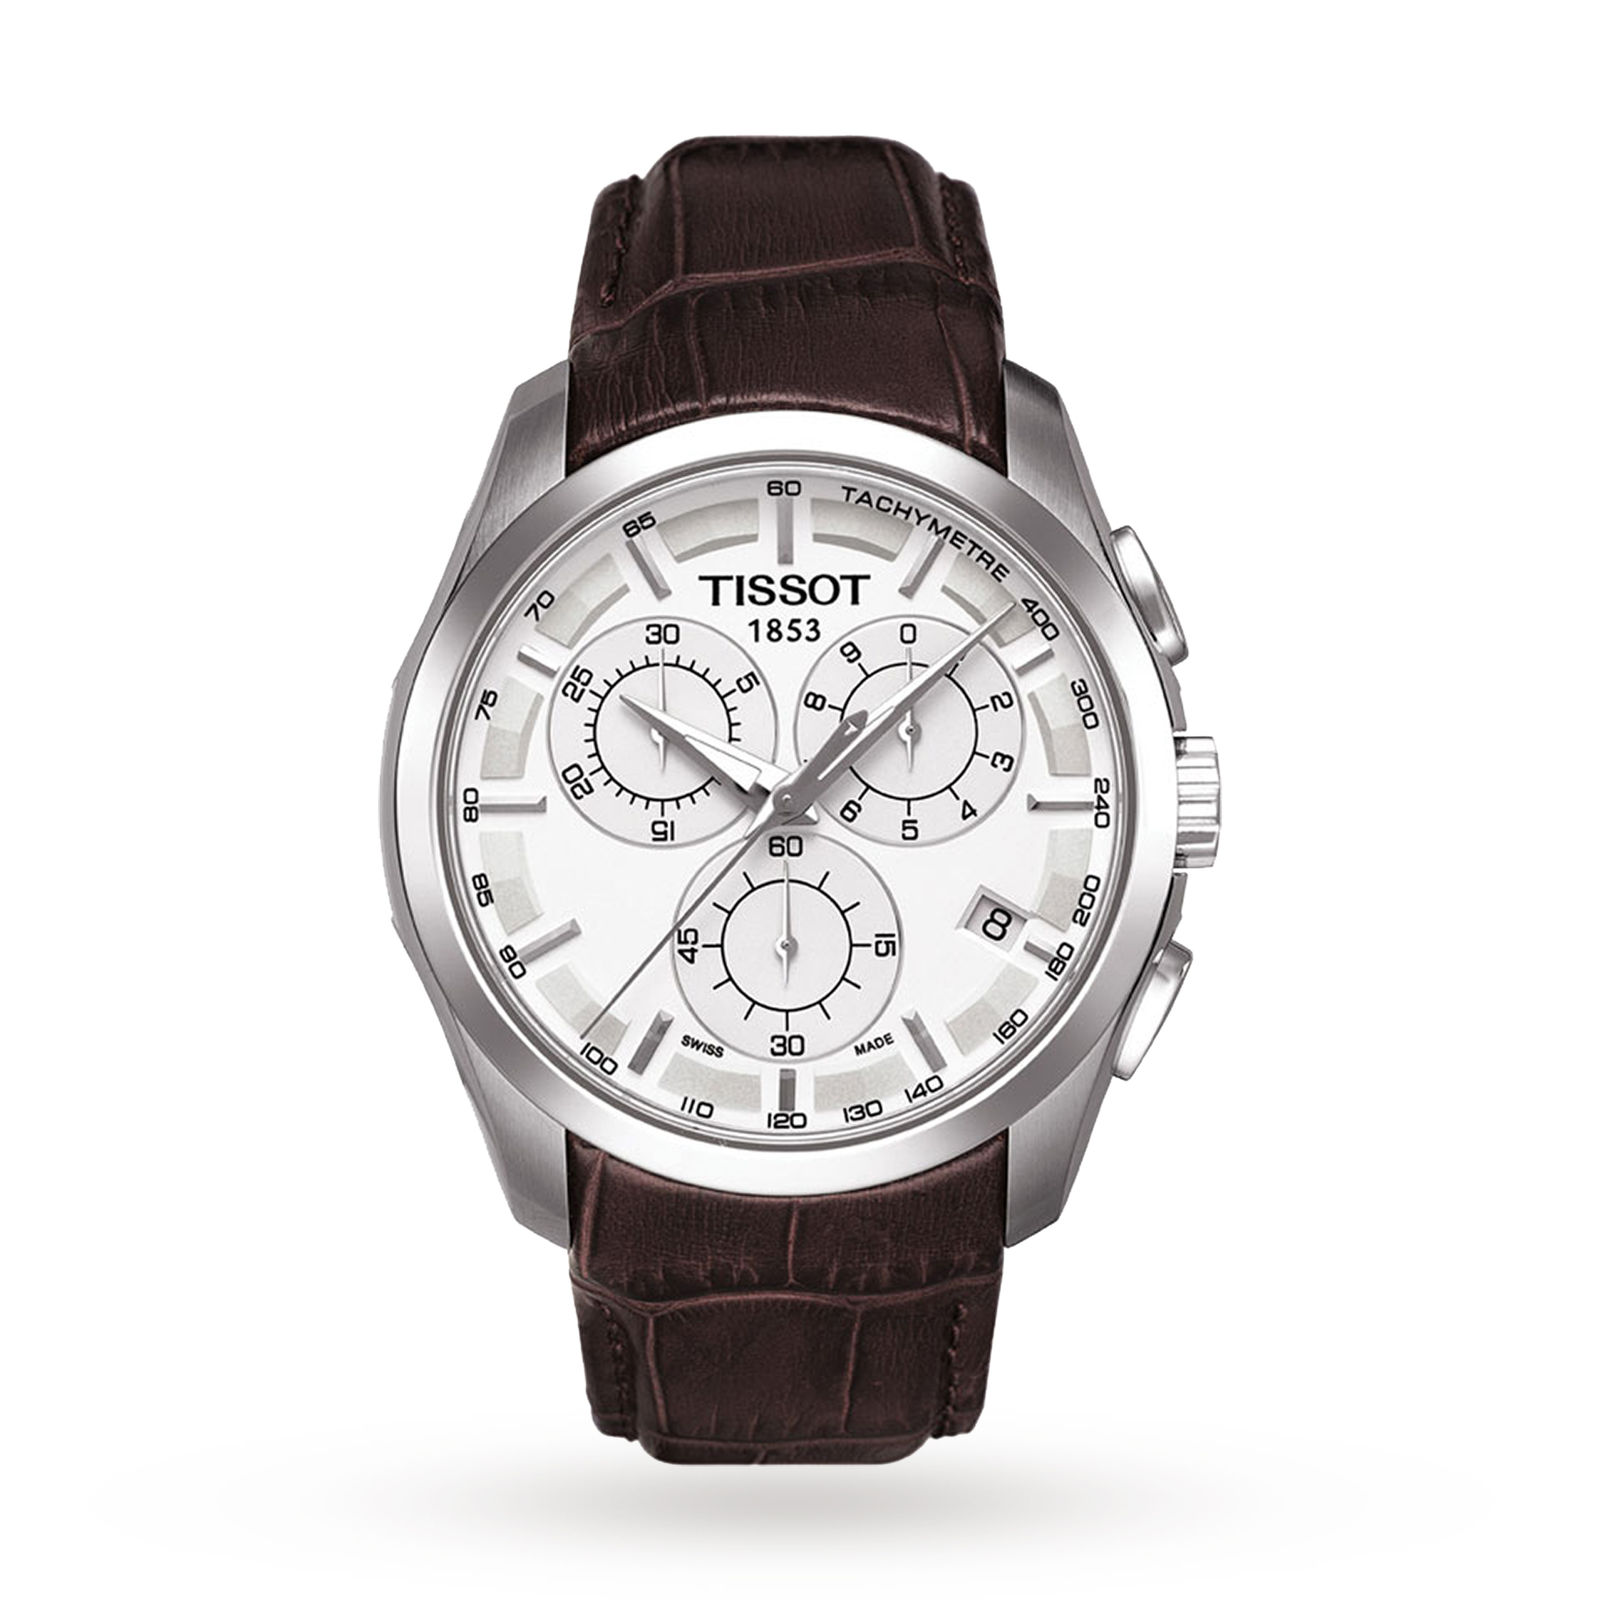 Tissot Men's Couturier Chronograph Watch